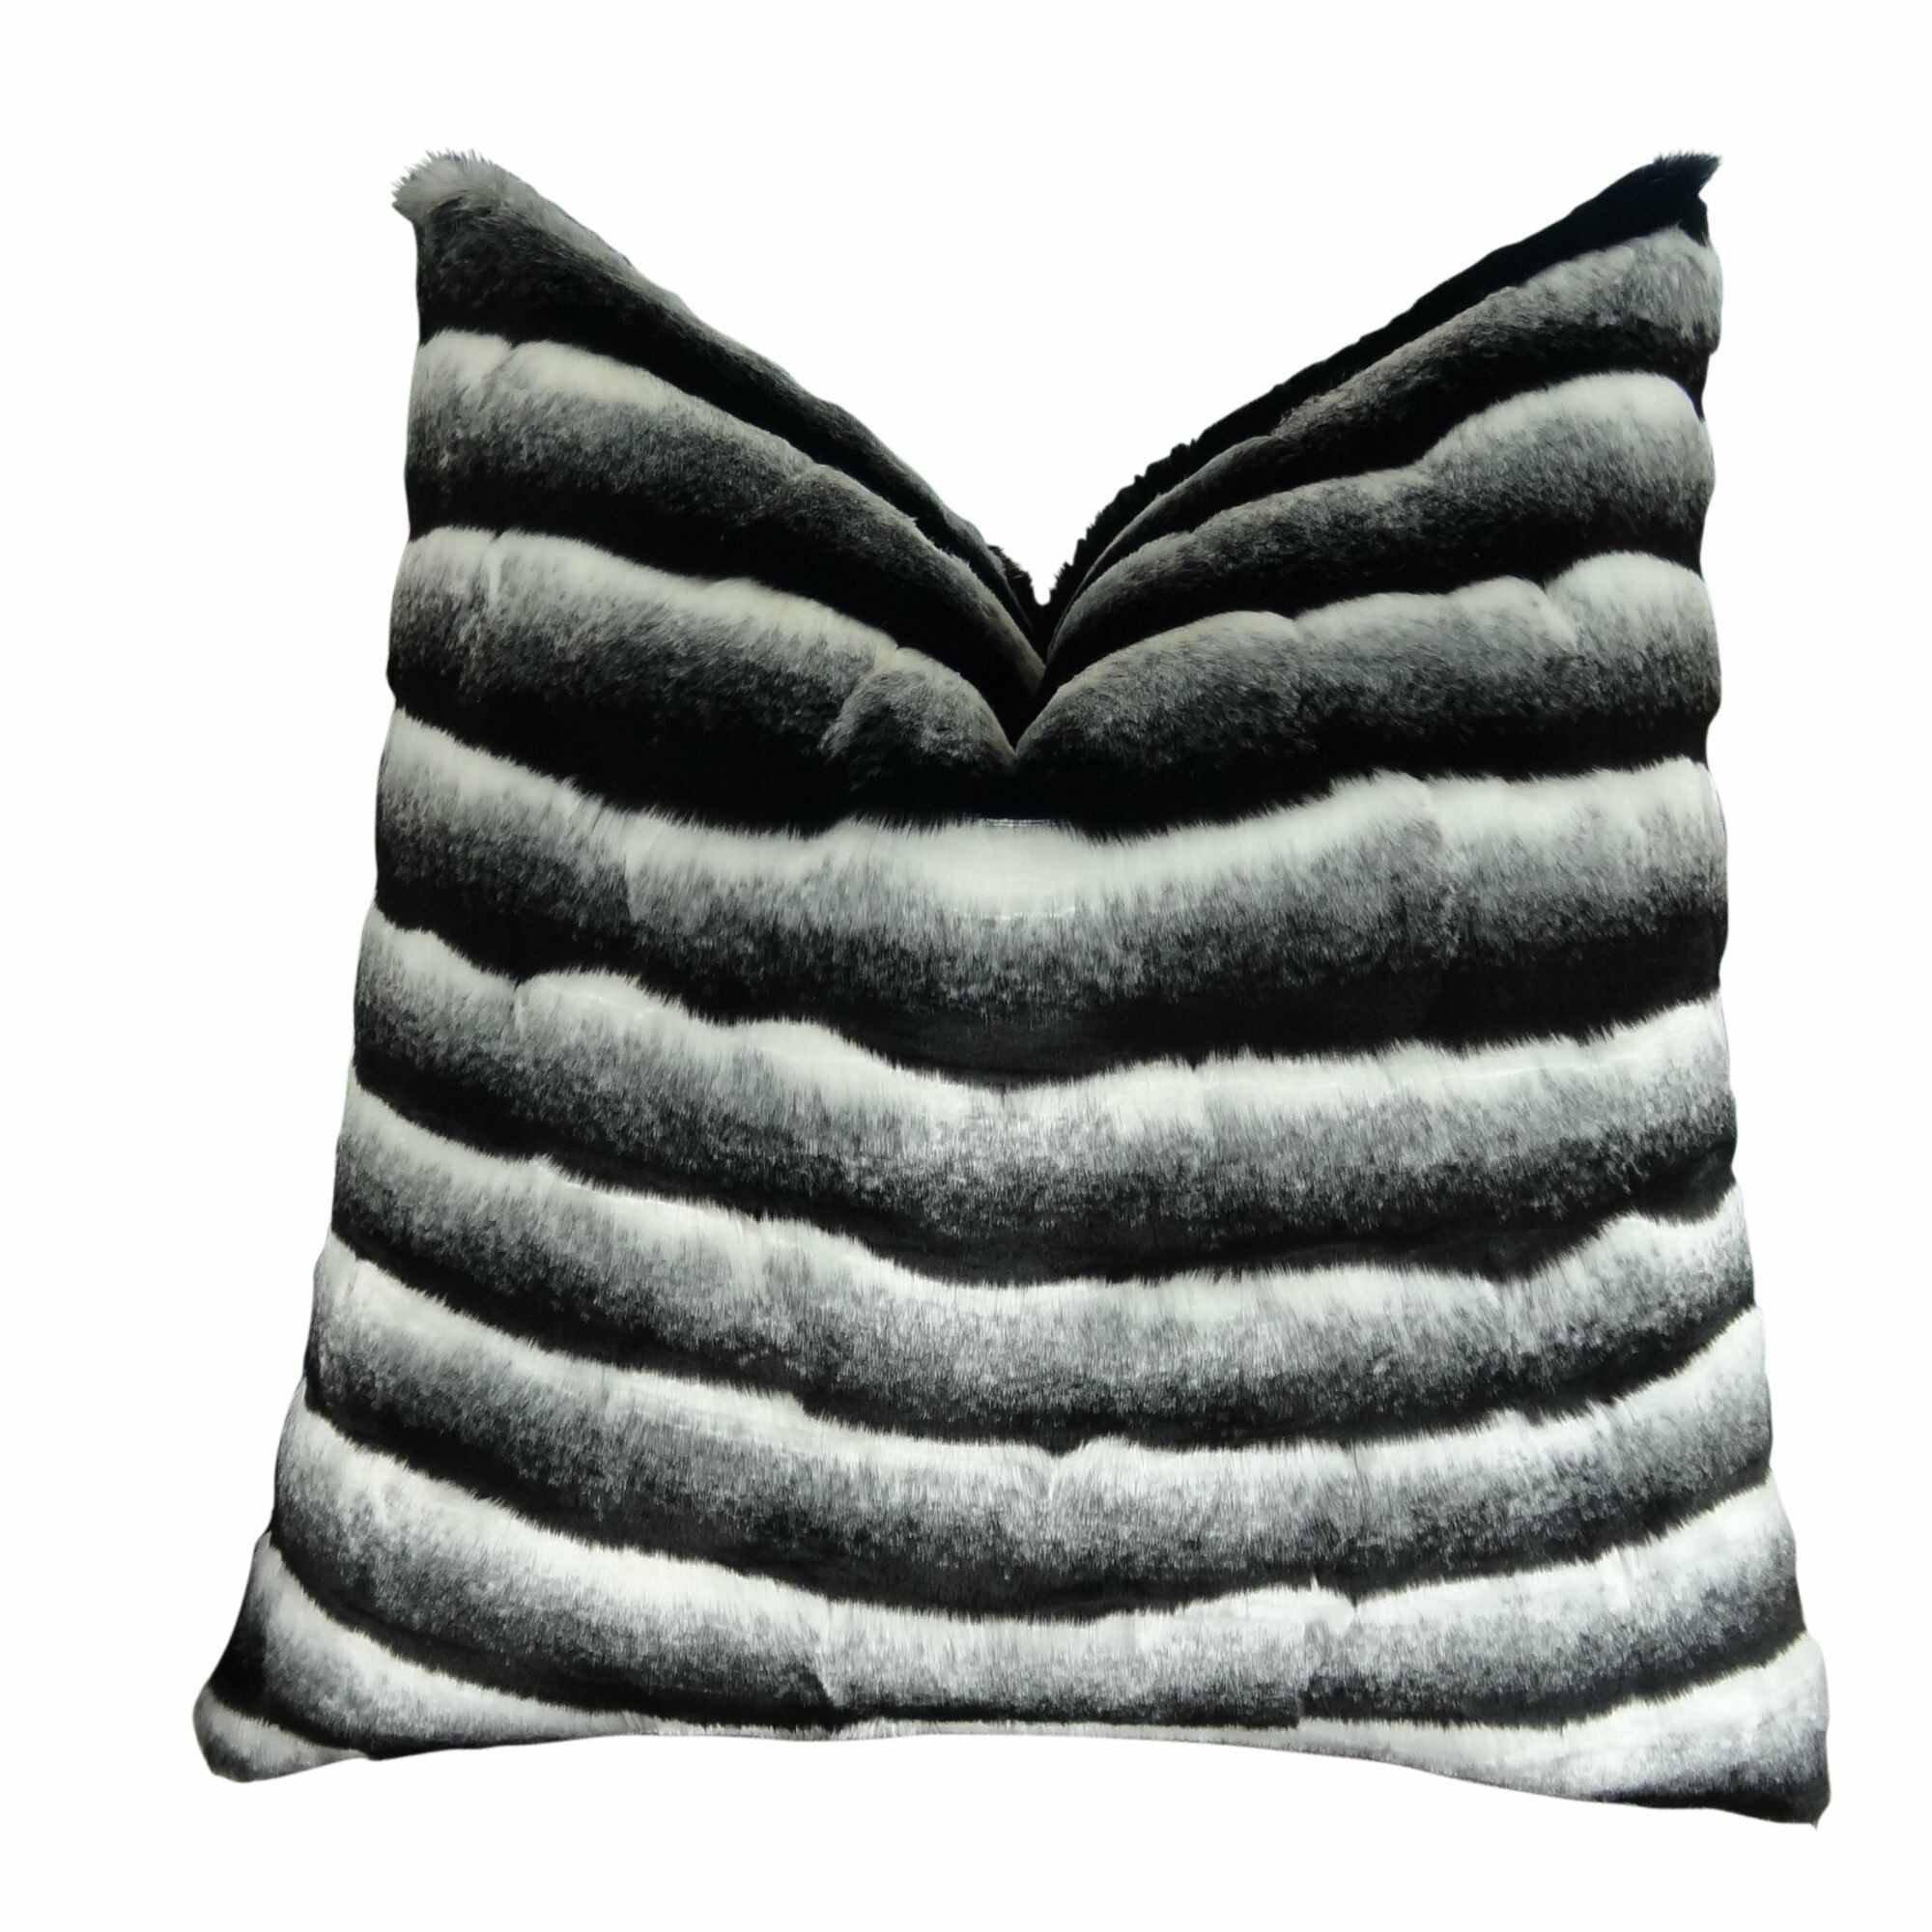 Joyal Chinchilla Faux Fur Pillow Fill Material: Cover Only - No Insert, Size: 26